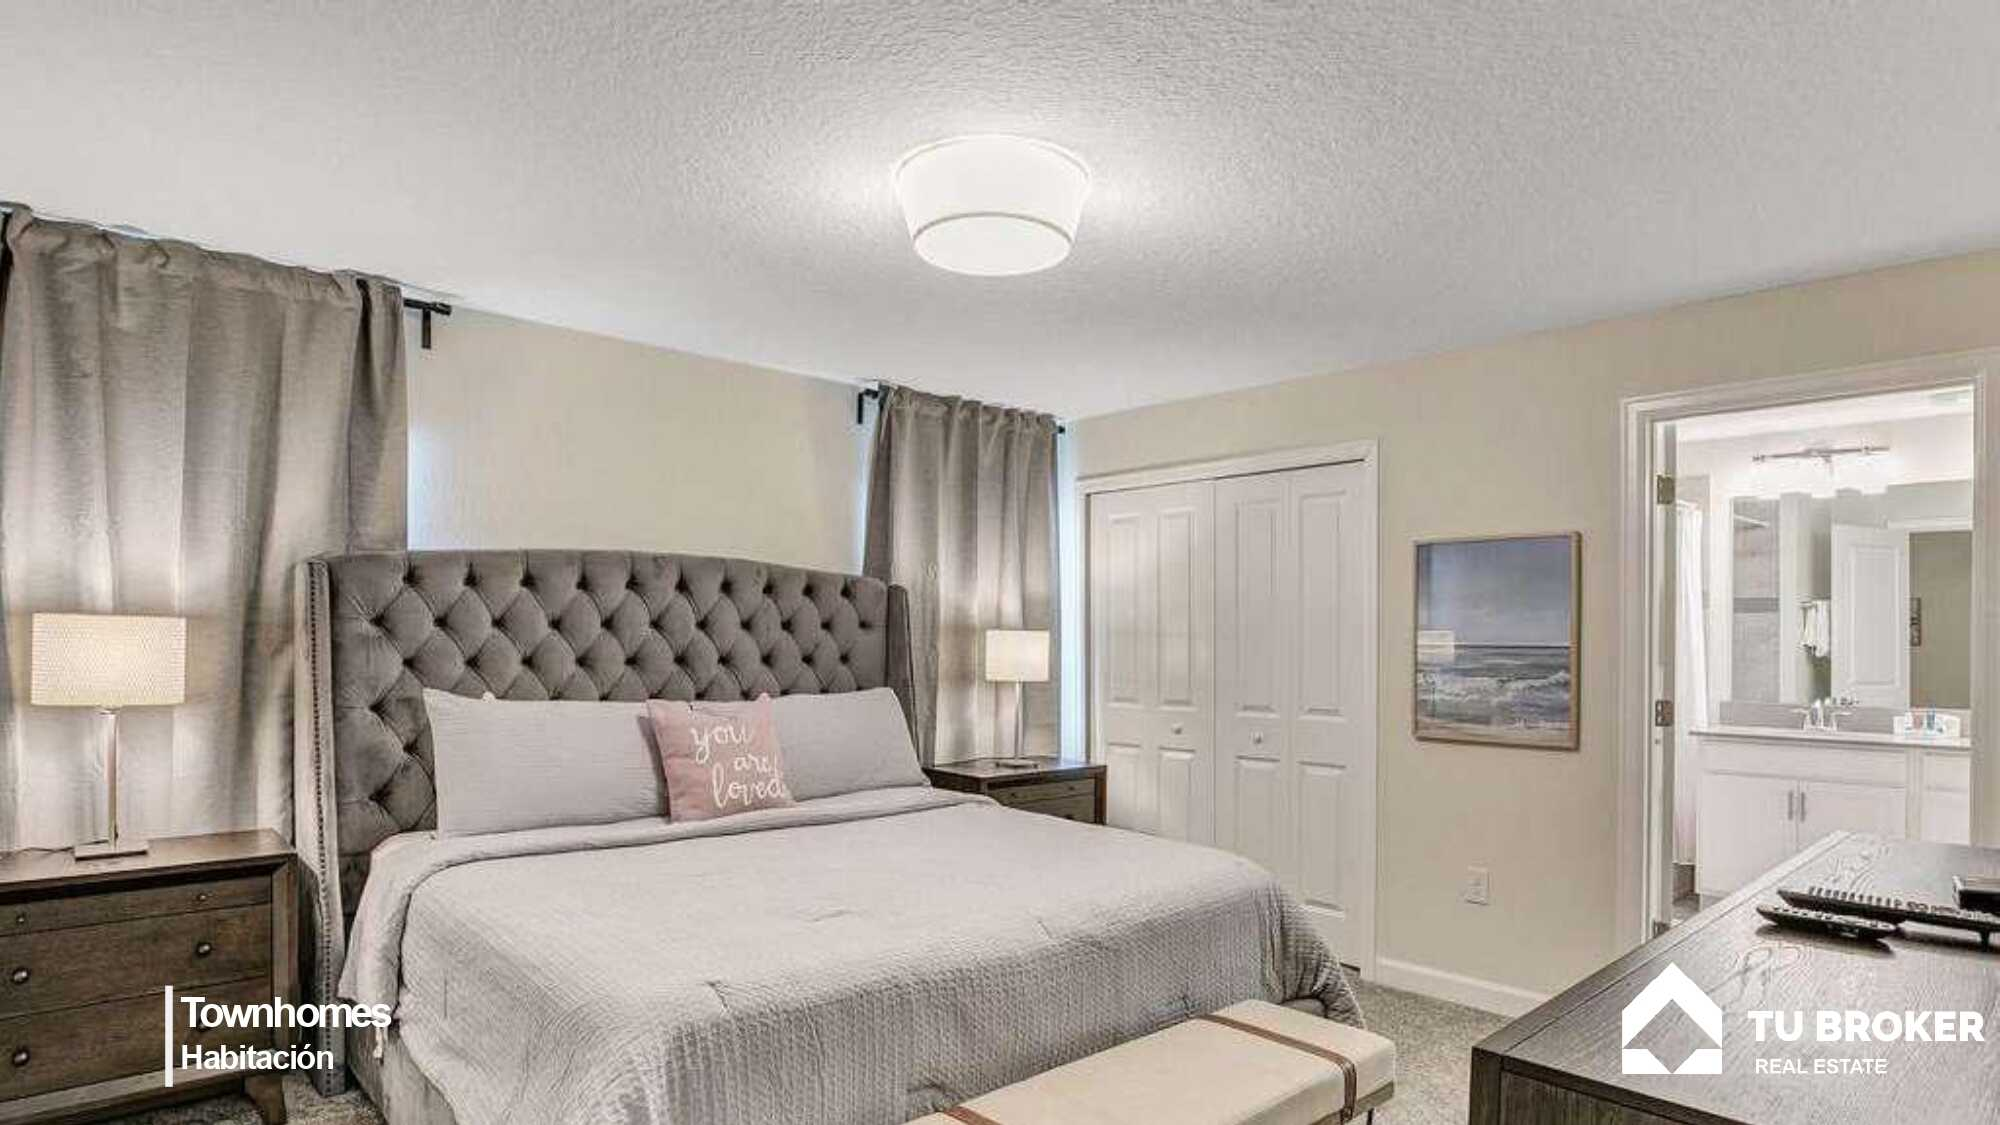 pag-orla-sl-townhomes_compressed-1_page-0022_optimized